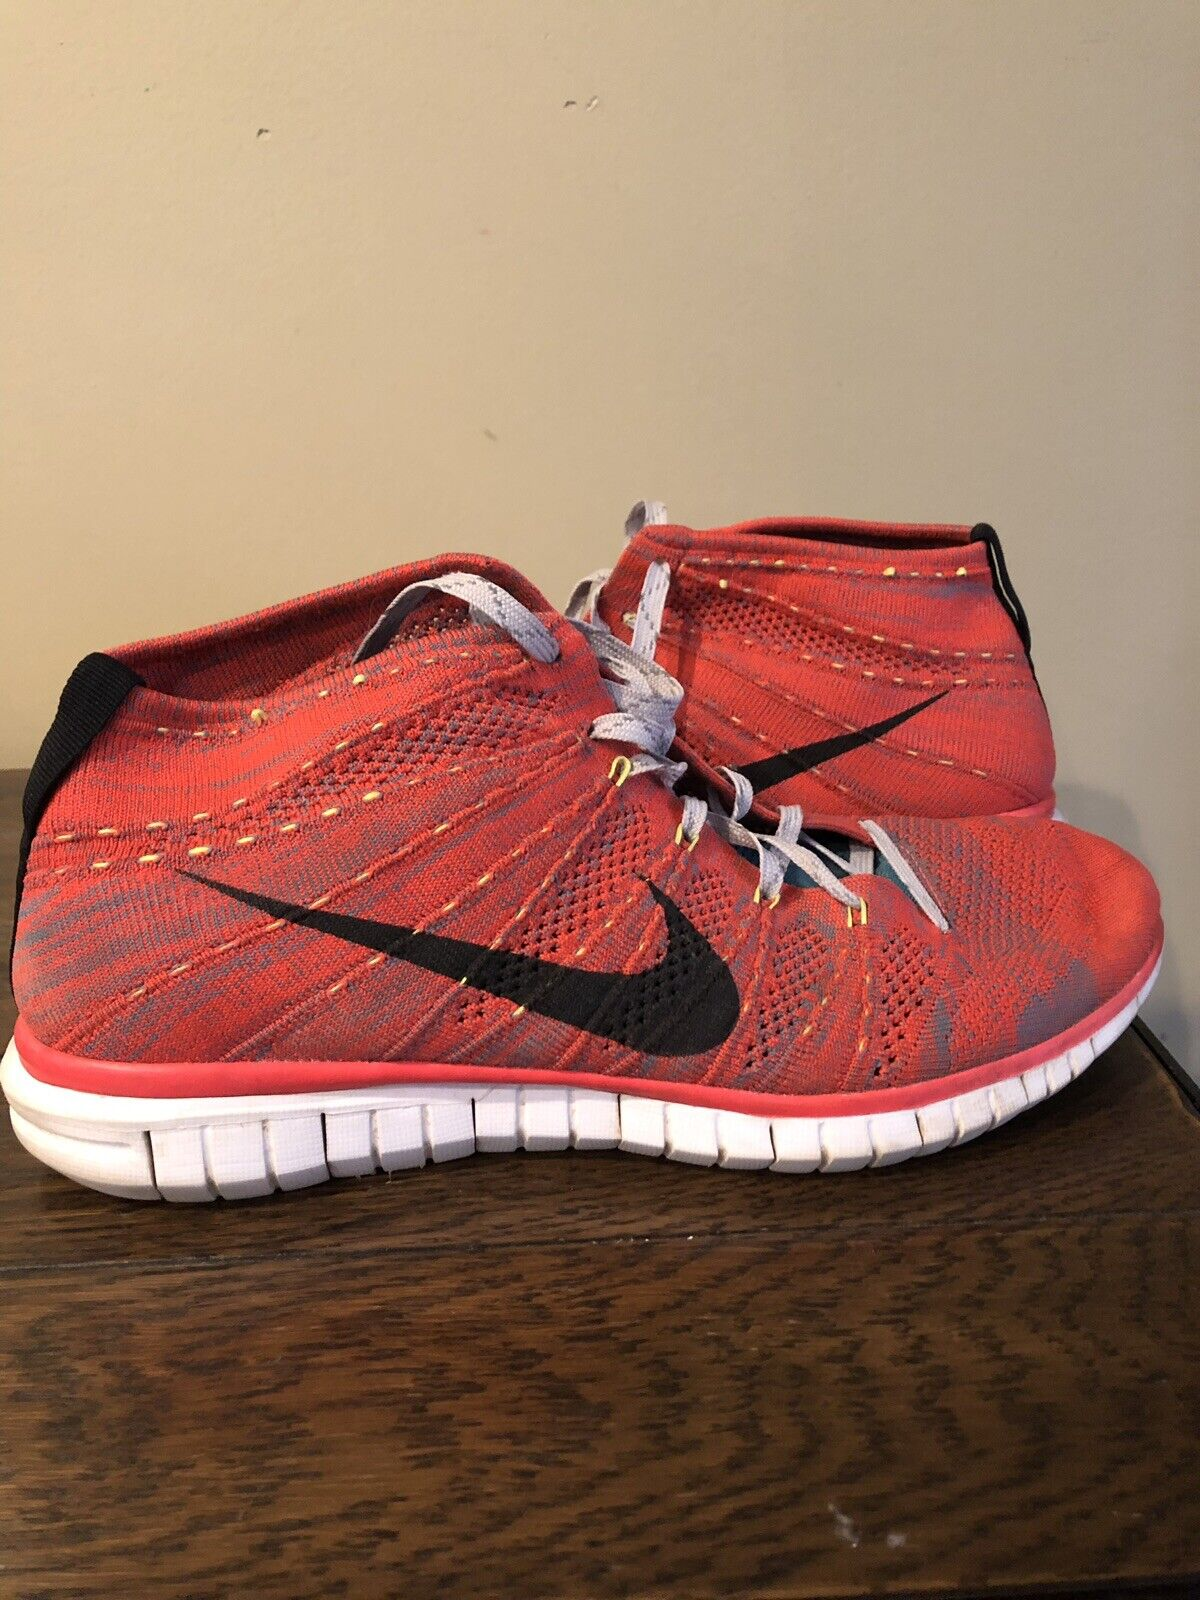 Nike Free Flyknit Chukka Mens Bright Crimson Red Run Running shoes Boots Size 11